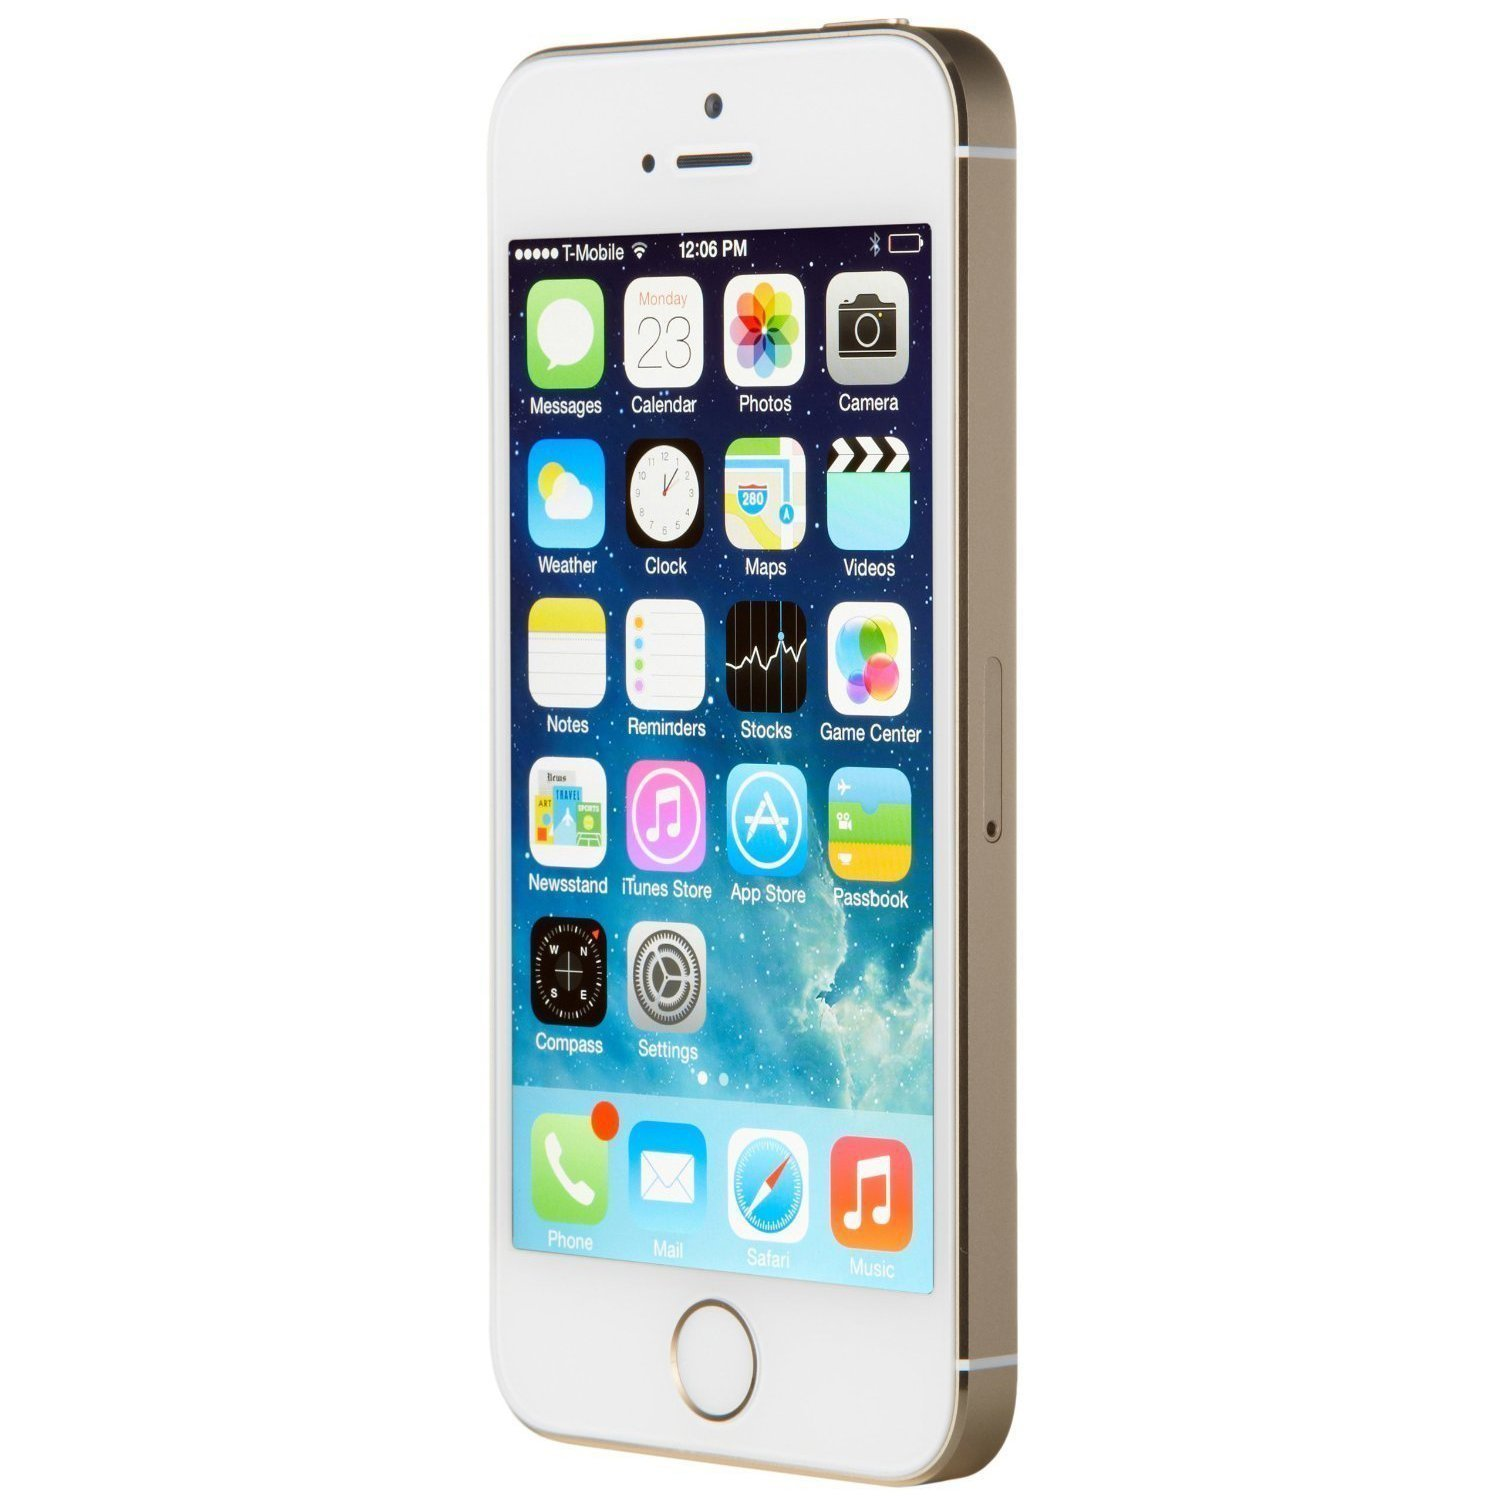 Iphone 5s 16gb brand new unlocked genuine apple iphone best price in -  Unlocked Apple Iphone 5s 32gb Gold Me328ll A